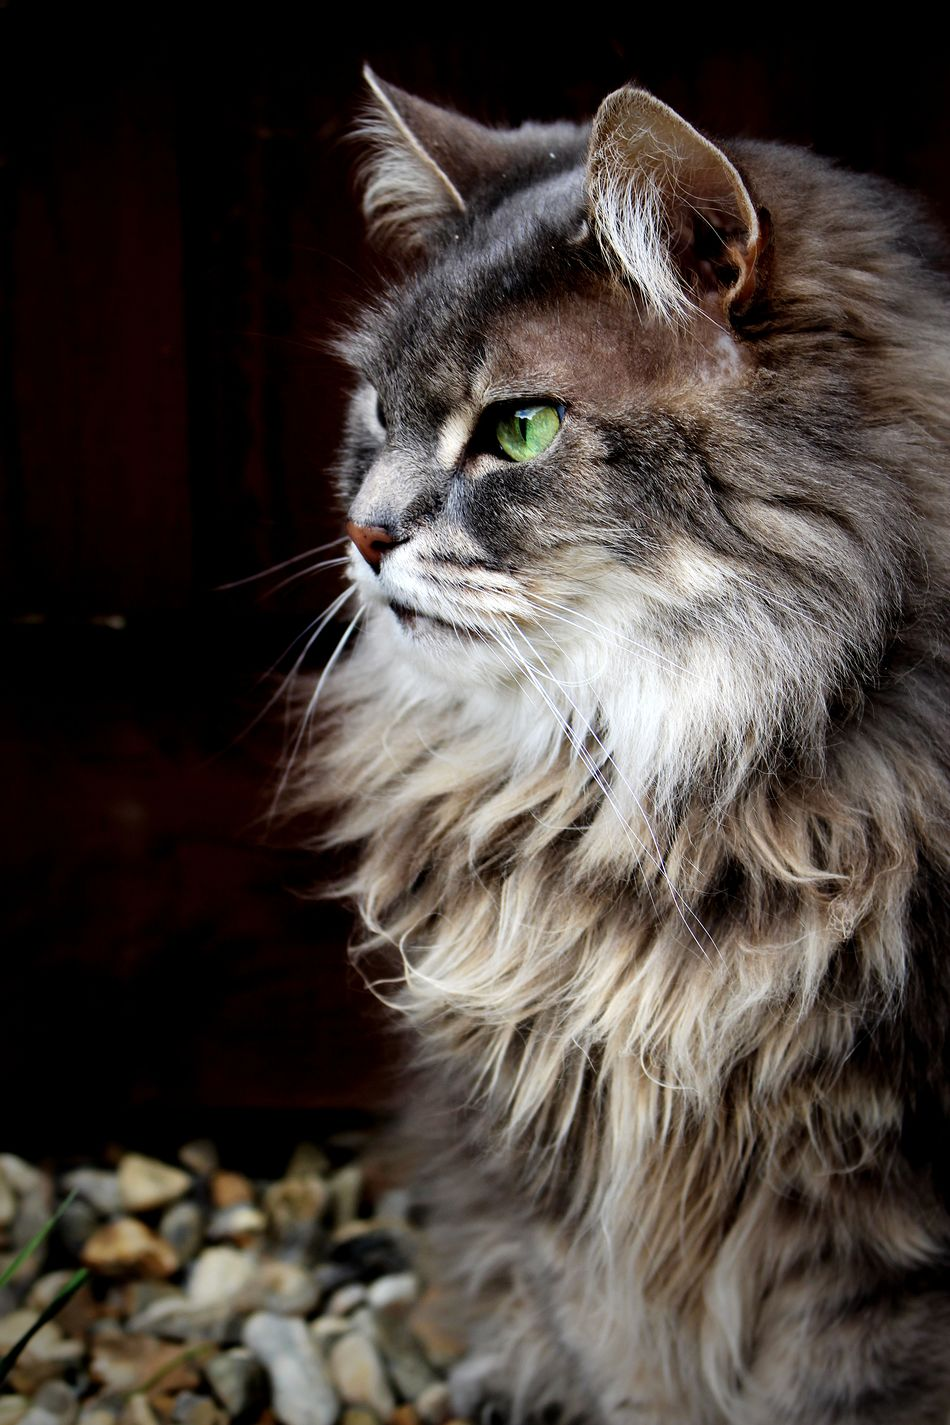 Kitty Pets Domestic Animals No People Portrait Day Close-up Outdoors Cute Photography Fur Greeneyes Fluffy Sunday Canon